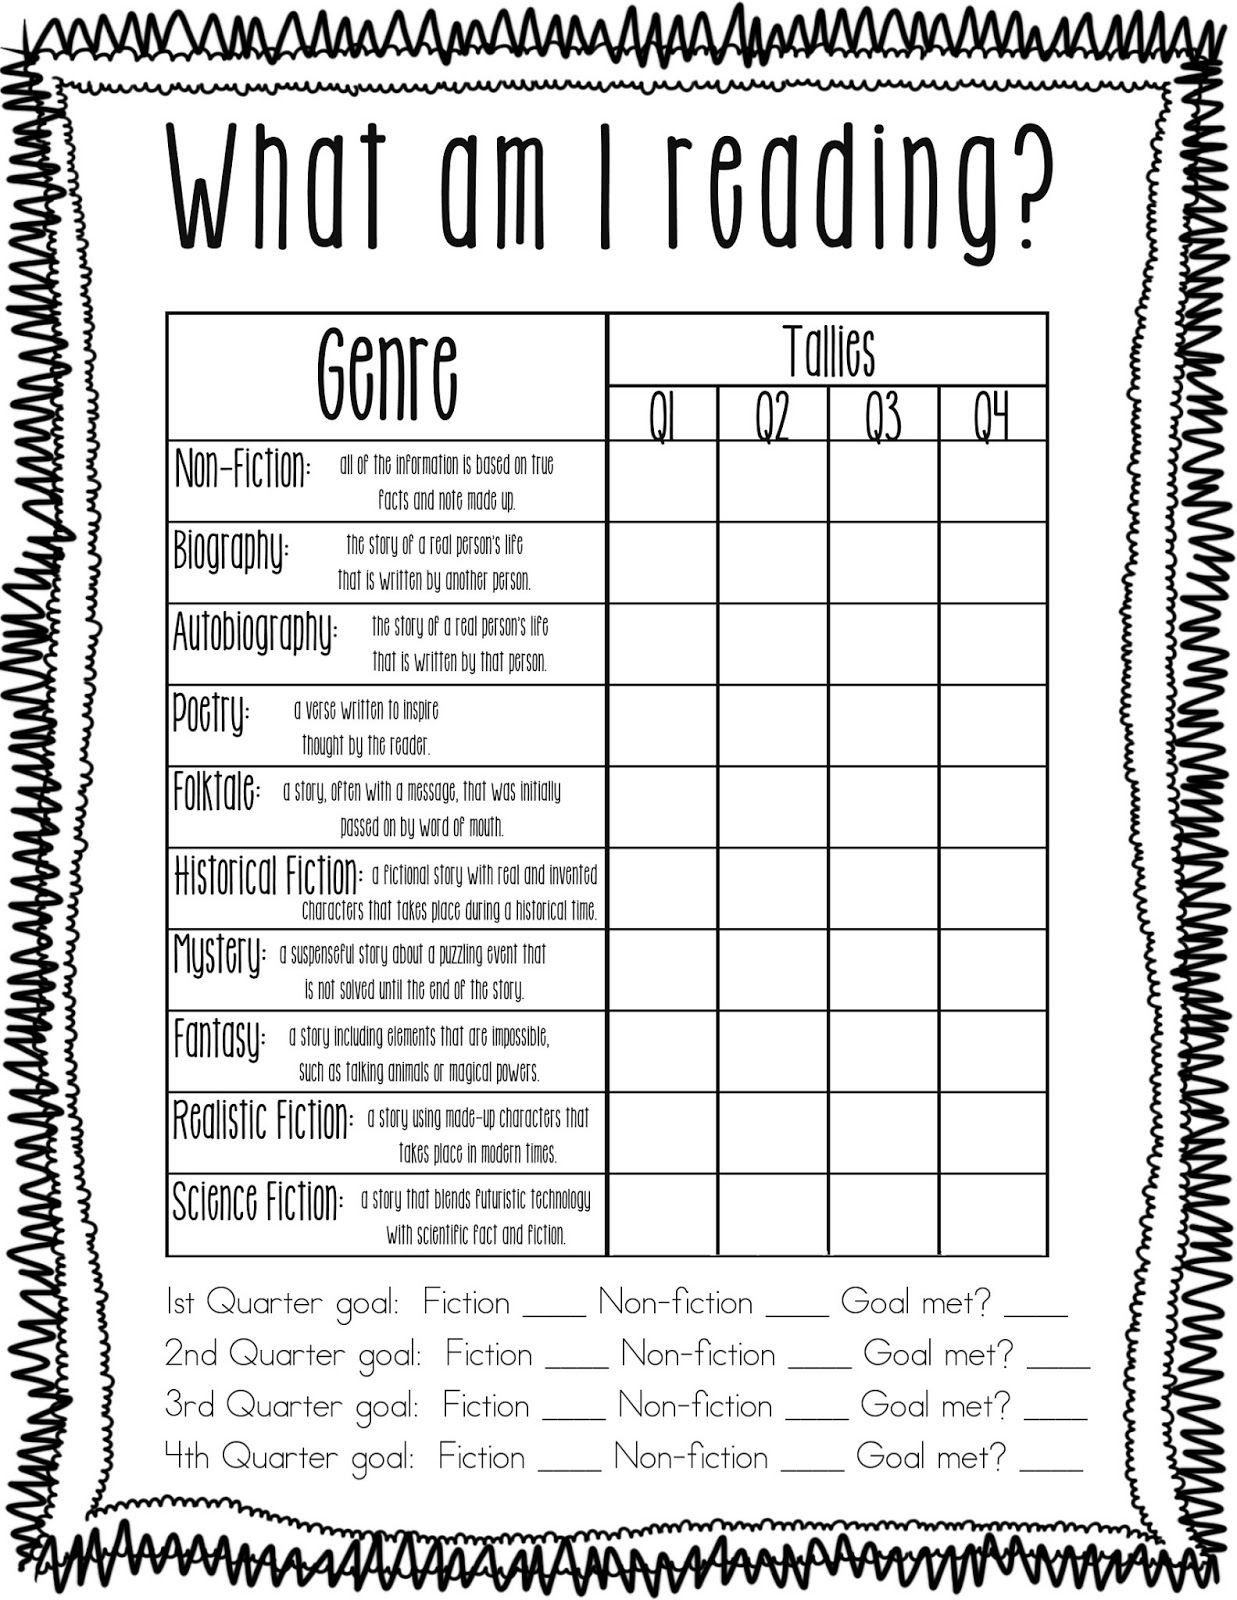 Genre Worksheets 4th Grade Identifying Genres Literature Worksheet